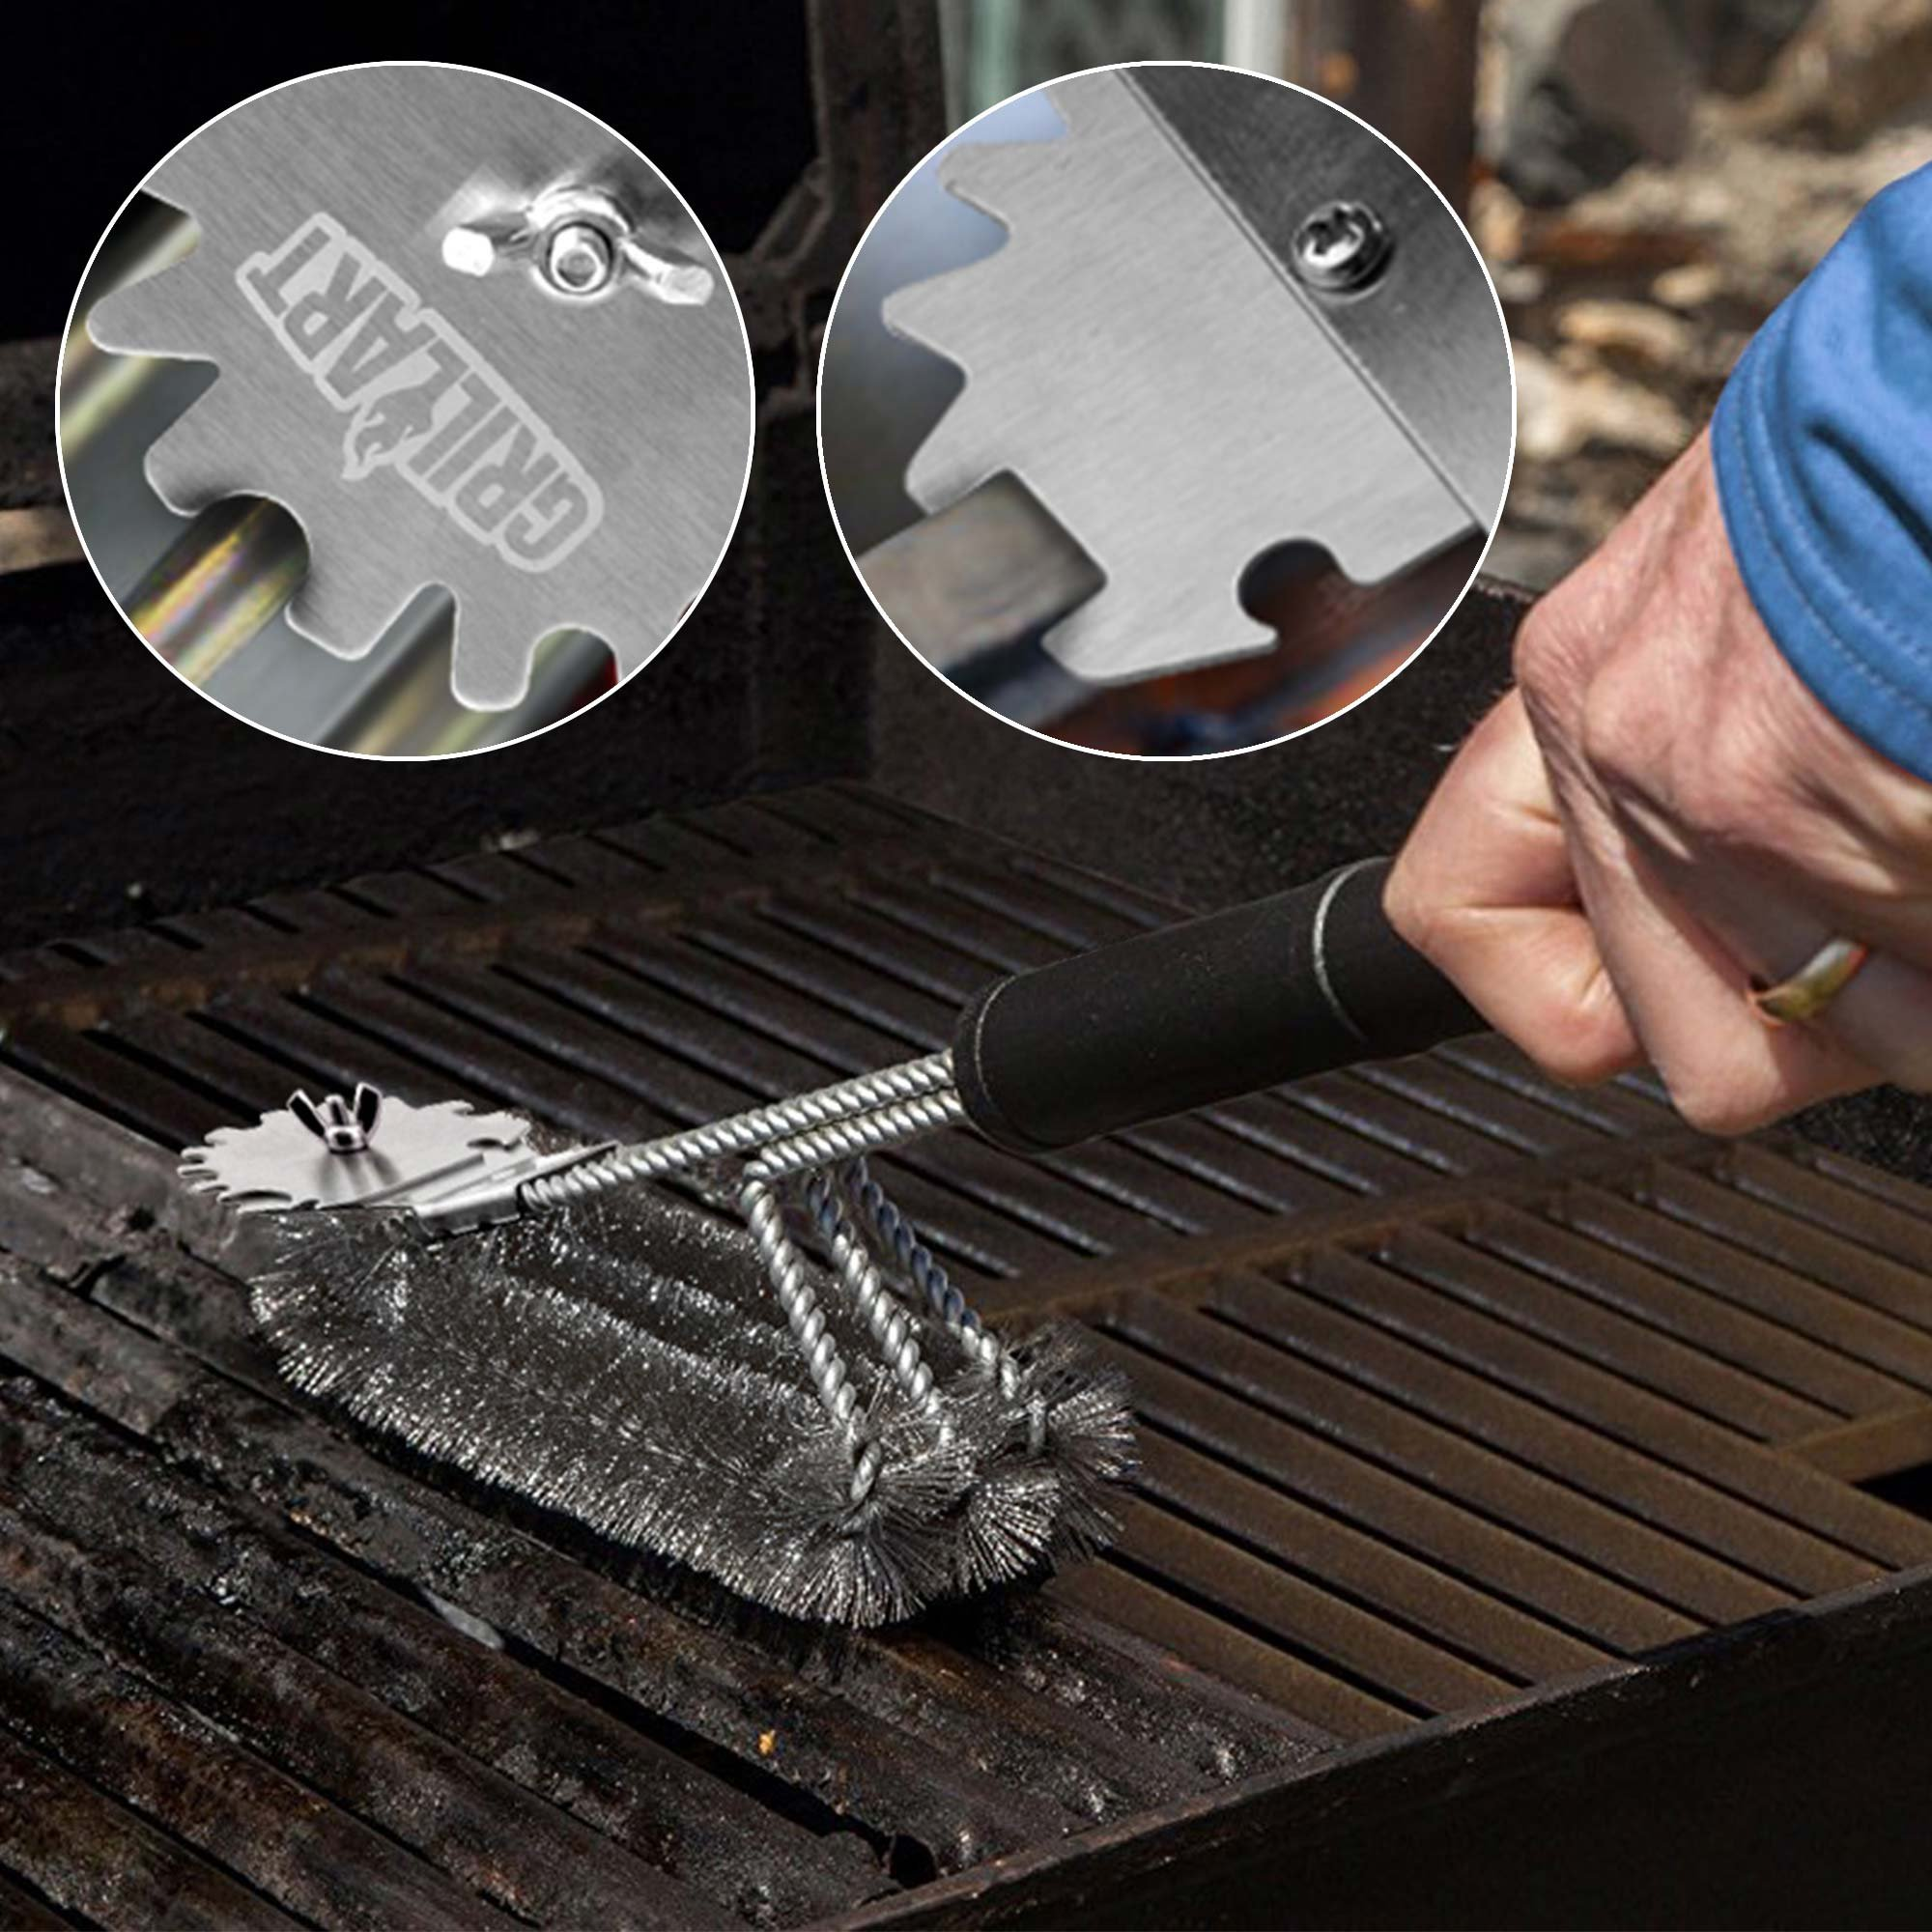 Grill Brush and Scraper Universal Fit - Adjustable BBQ Grill Accessories Cleaning Kit - 12 Grooves Safe 18'' Stainless Steel Barbecue Grill Cleaner Wizard Tools for Weber Gas/Charcoal Grilling Grates by GriIIArt (Image #2)